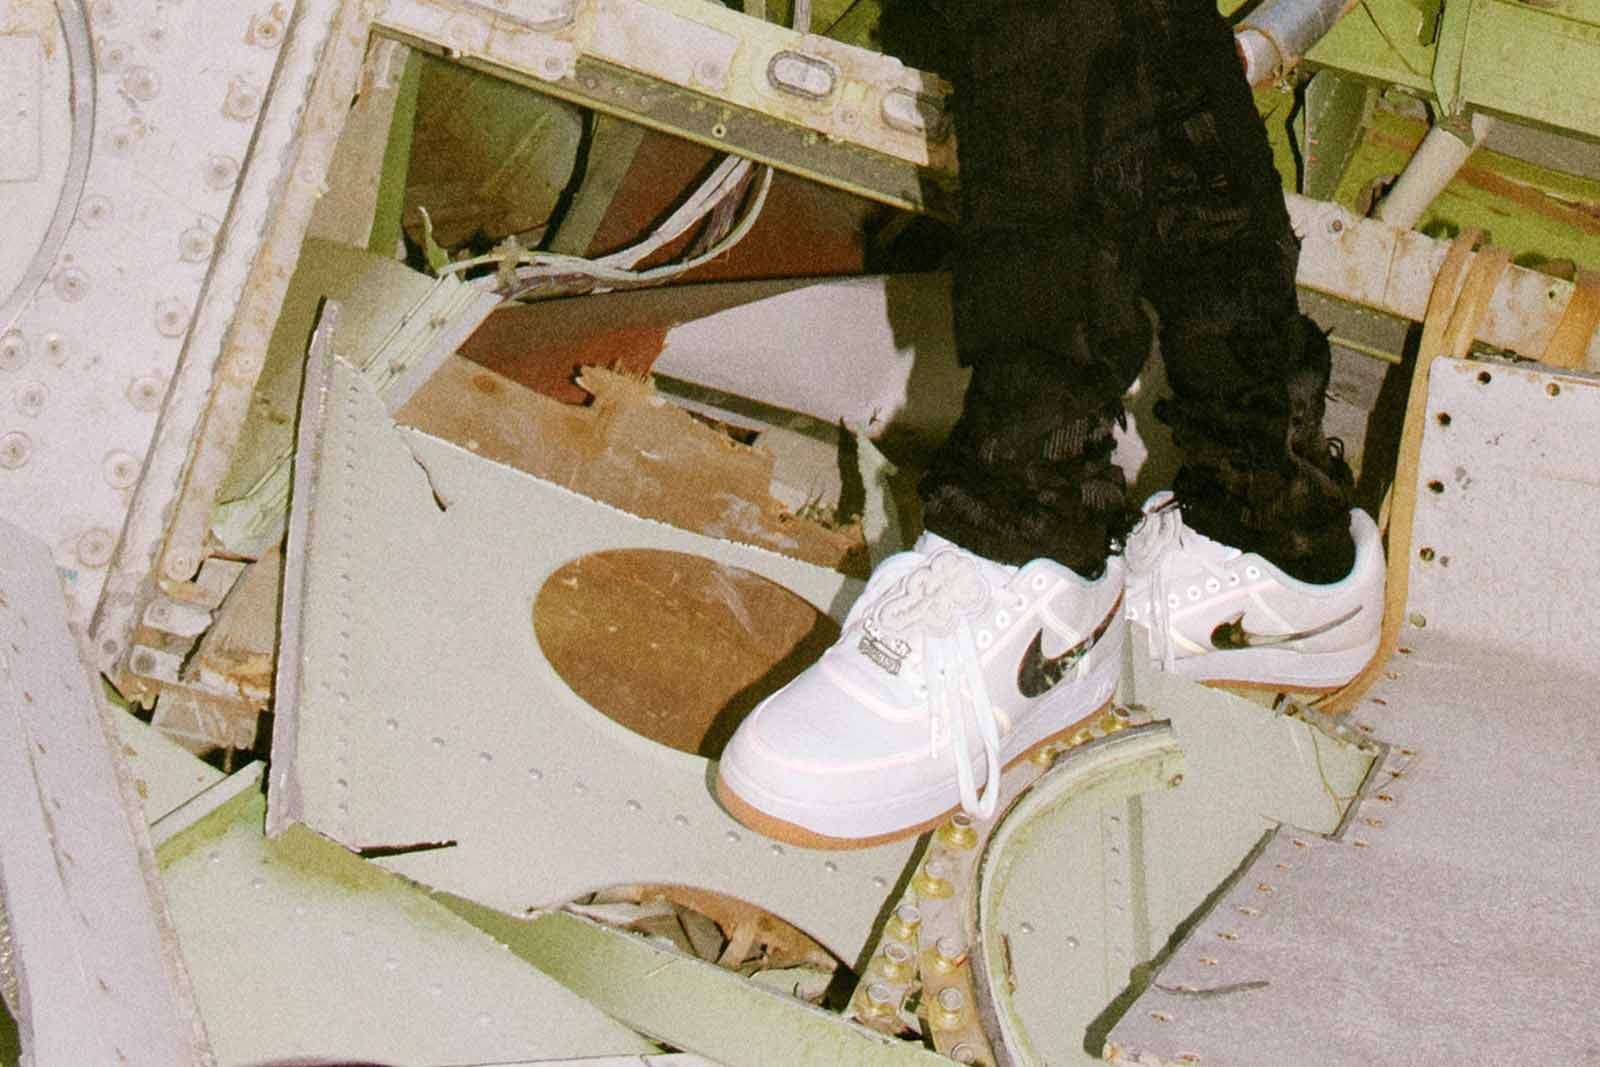 https-hypebeast.comimage201710AF-100-35-anniversary-nike-air-force-1-4